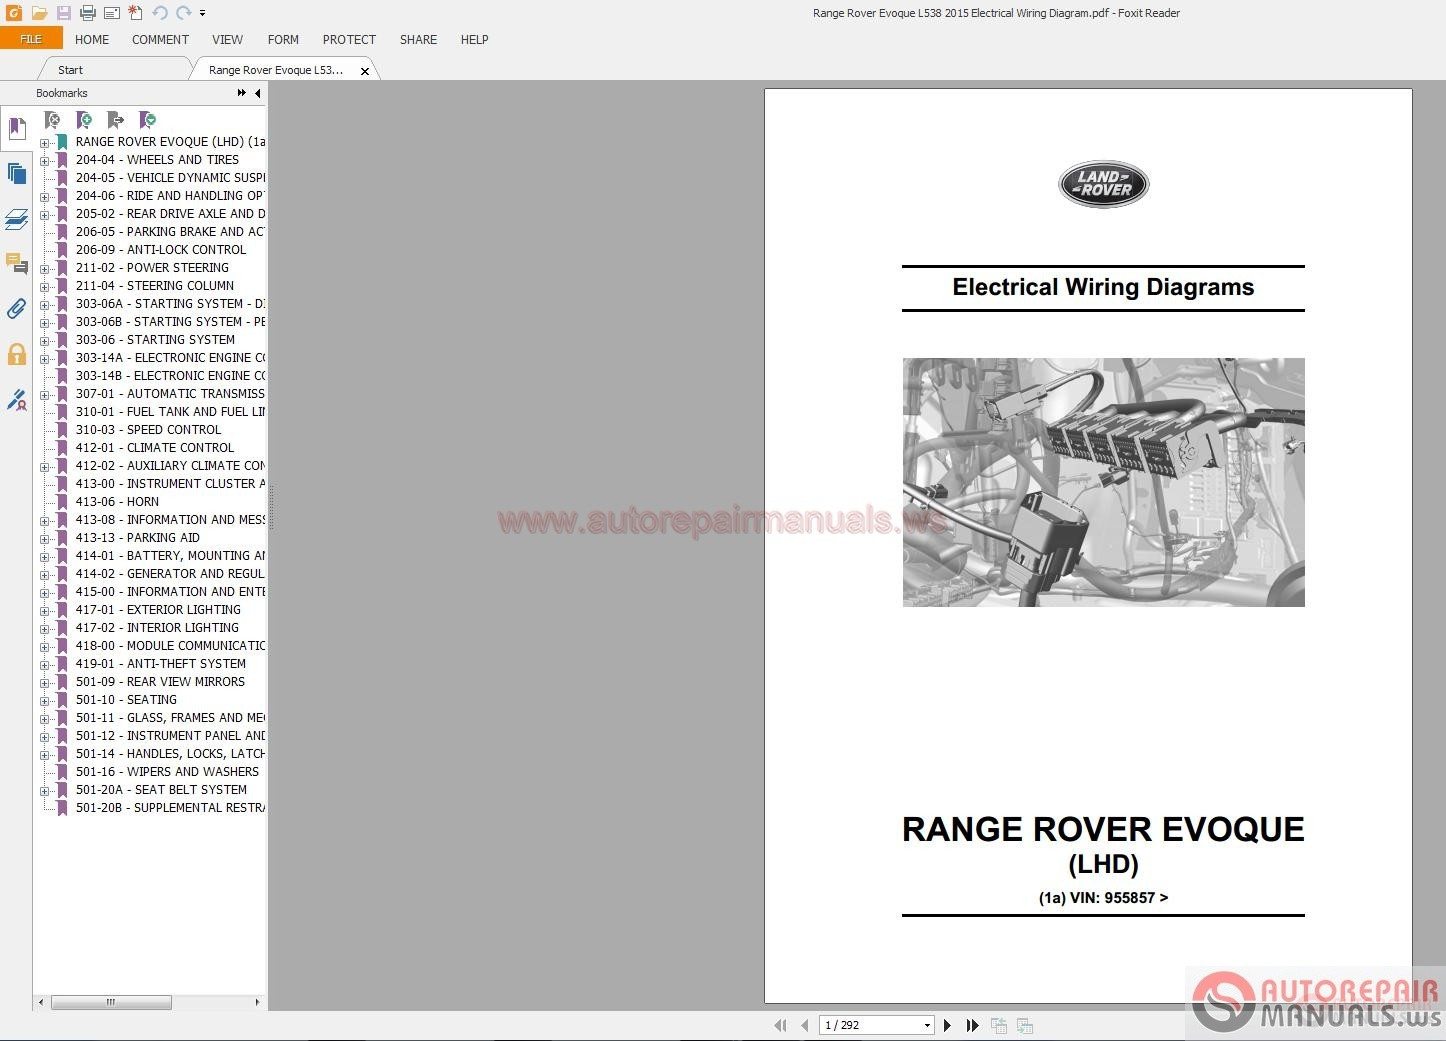 2002 land rover discovery wiring diagram range rover evoque l538 2015 electrical wiring diagram land rover discovery wiring diagram pdf